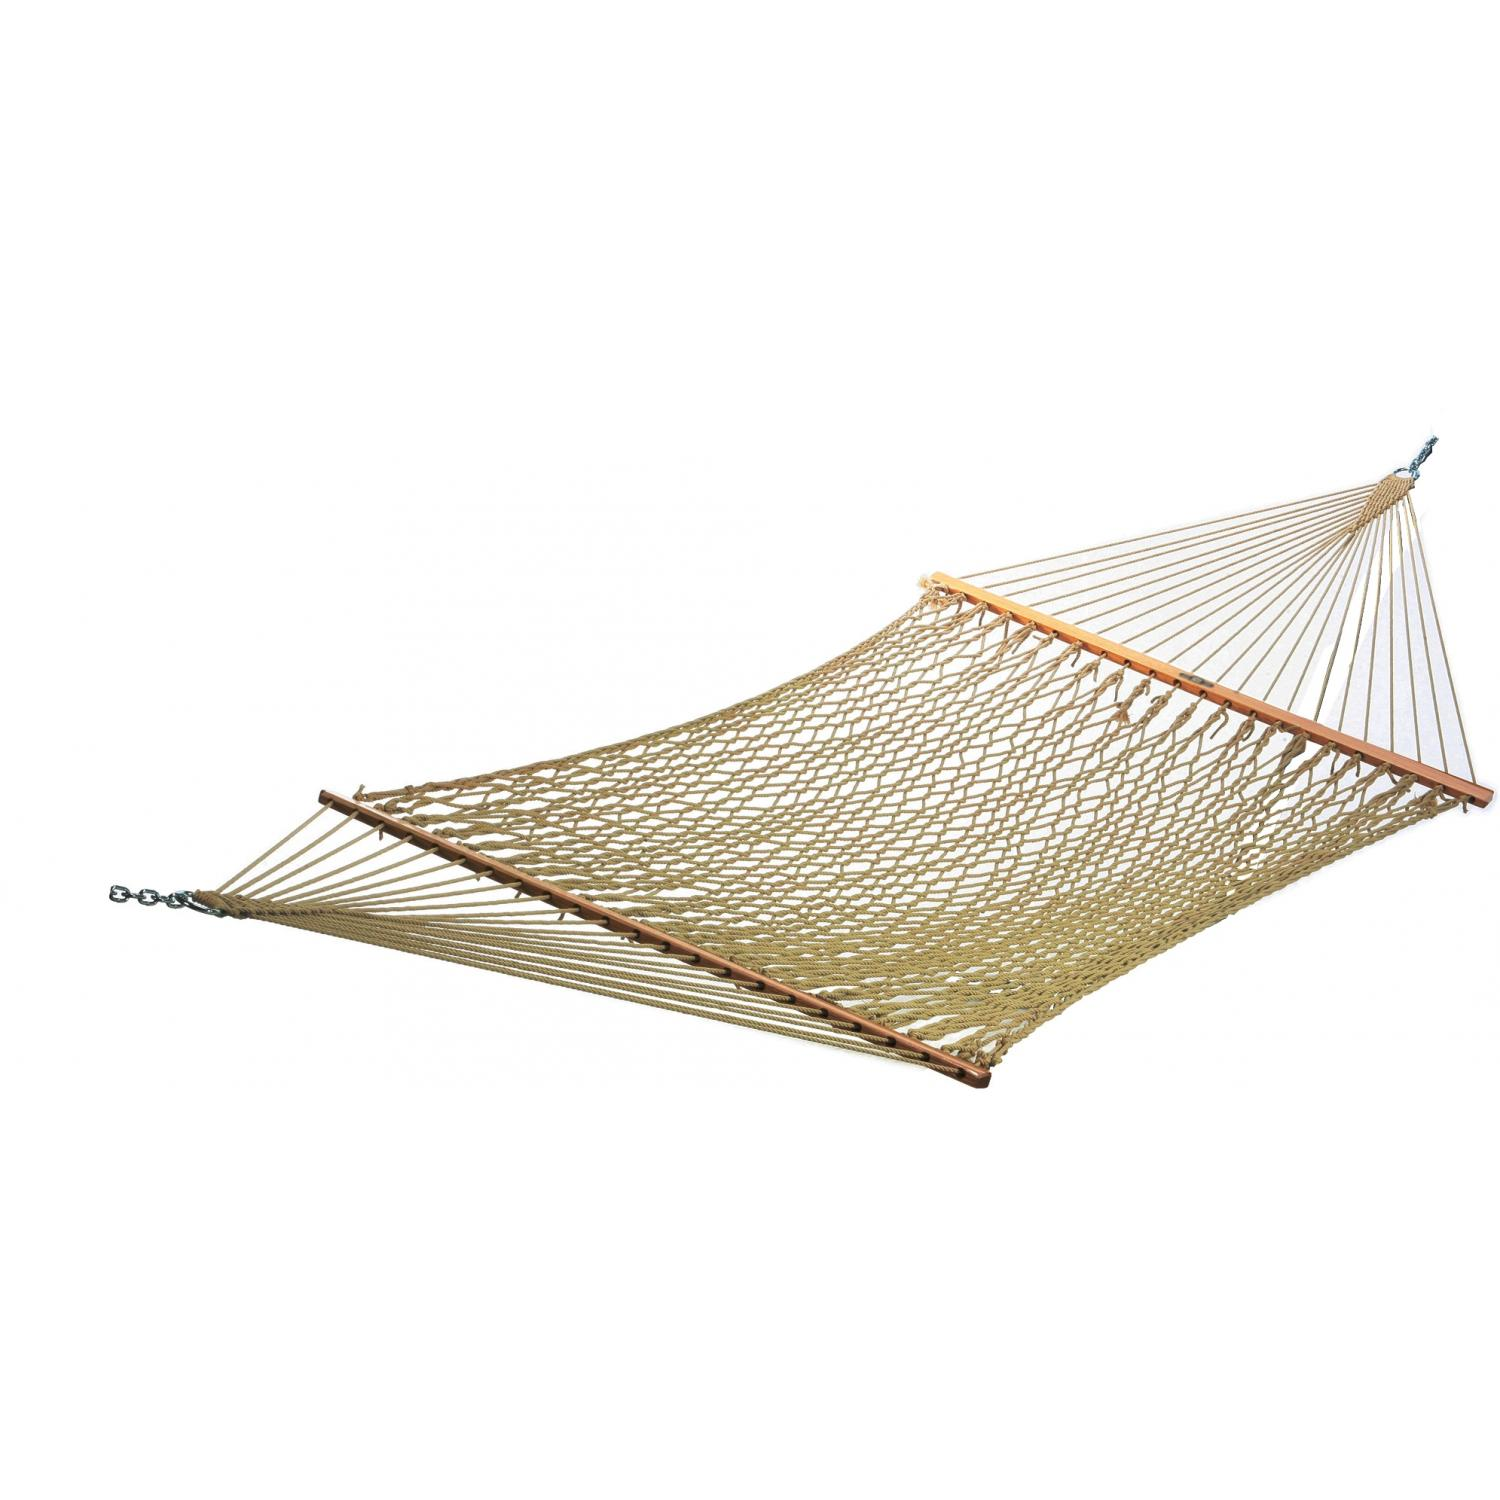 Pawleys Island 13DC Large Original DuraCord Rope Hammock - Antique Brown